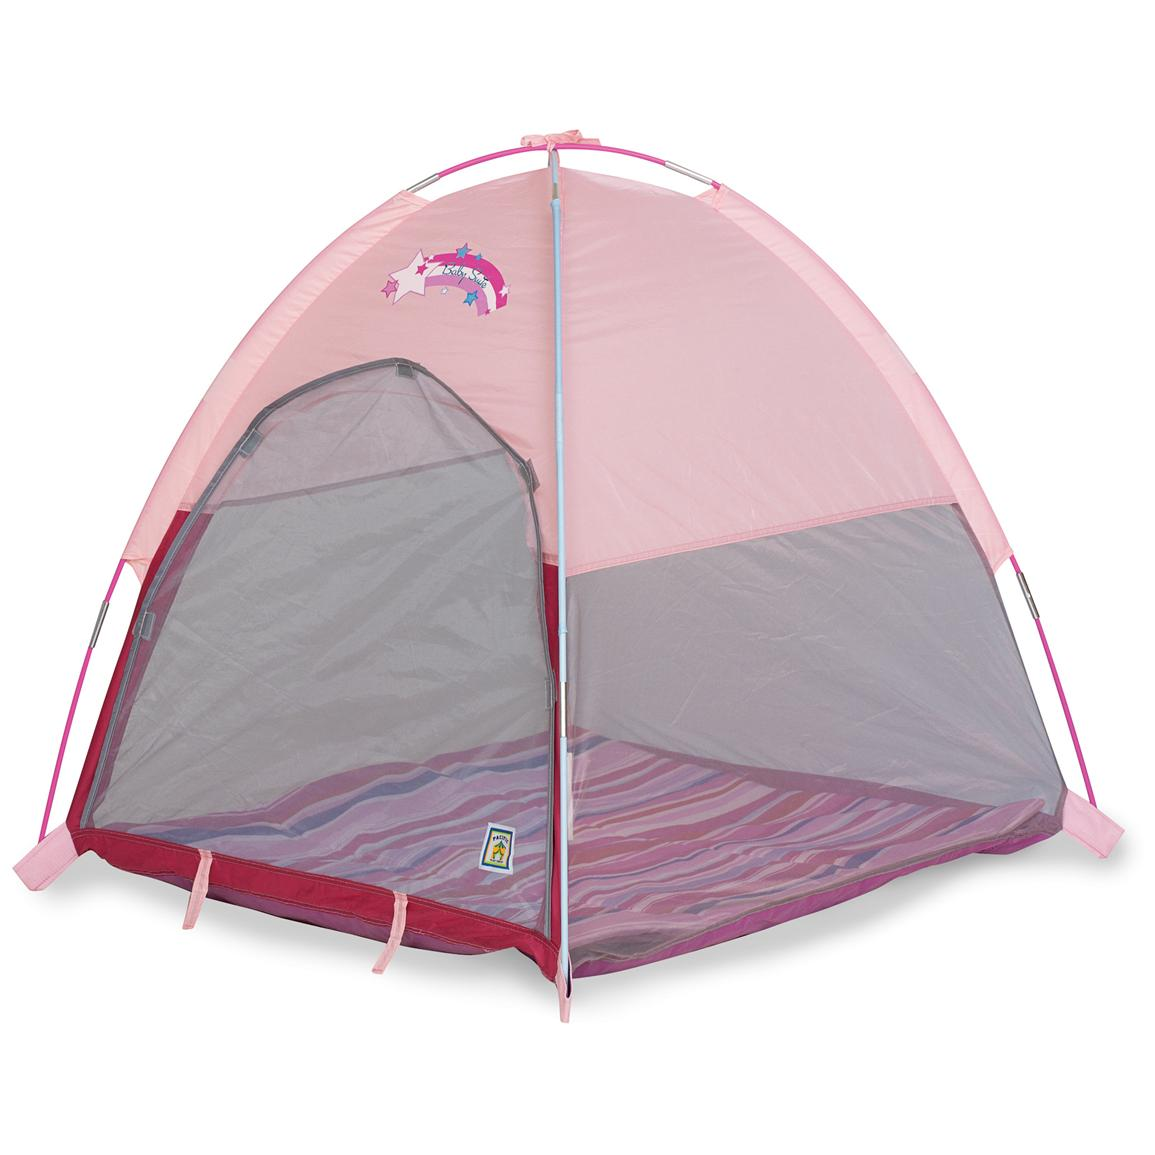 Pacific Play Tents® Baby Suite Deluxe Pink Nursery Tent